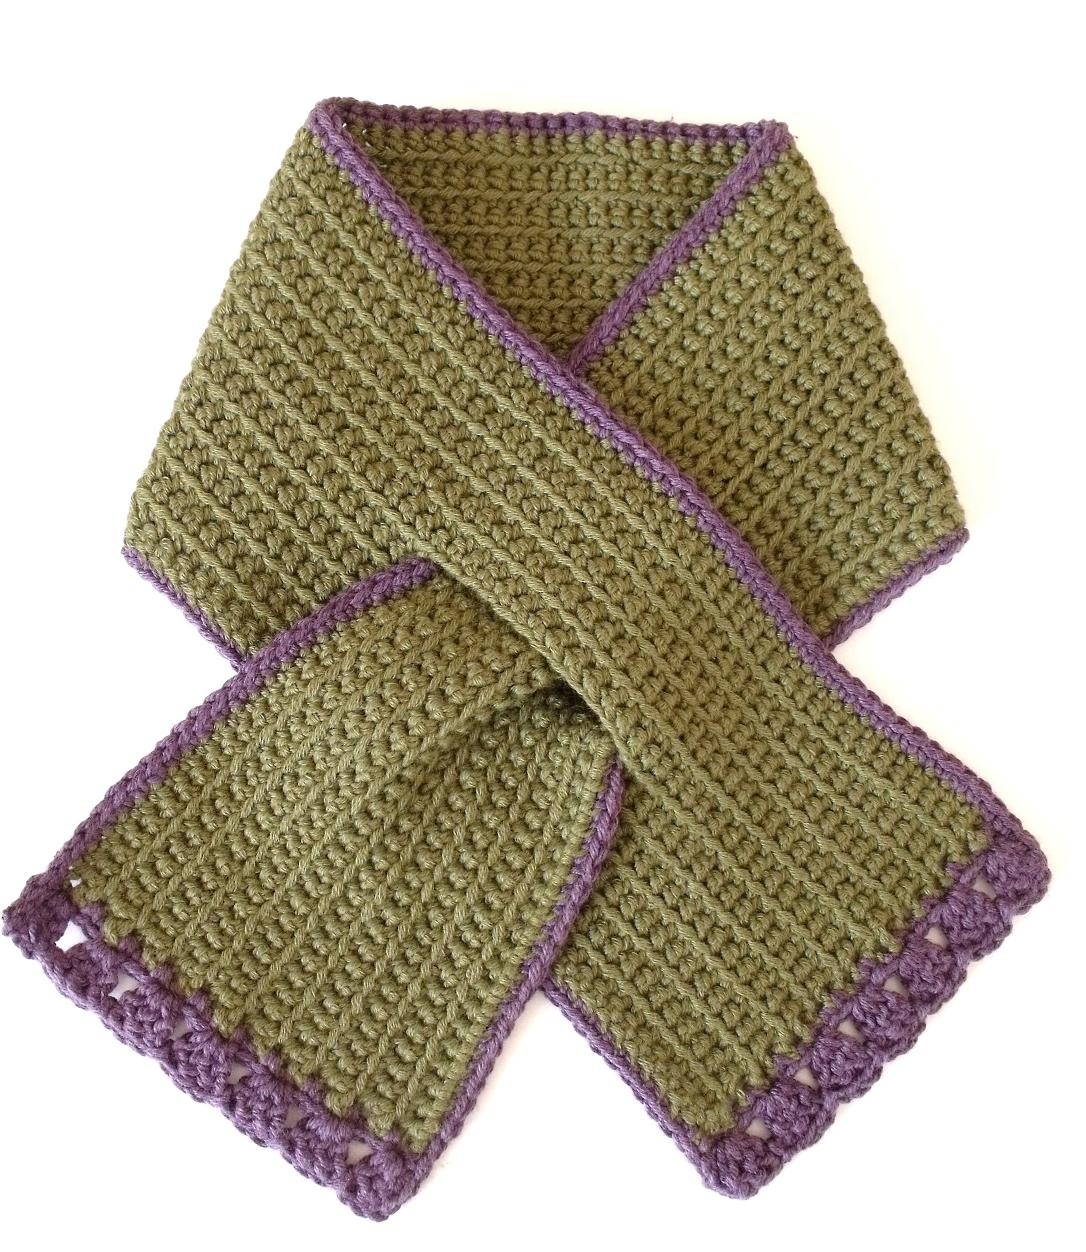 Free Knitting Pattern: Fun Fur® Triangle Scarf - Lion Brand Yarn